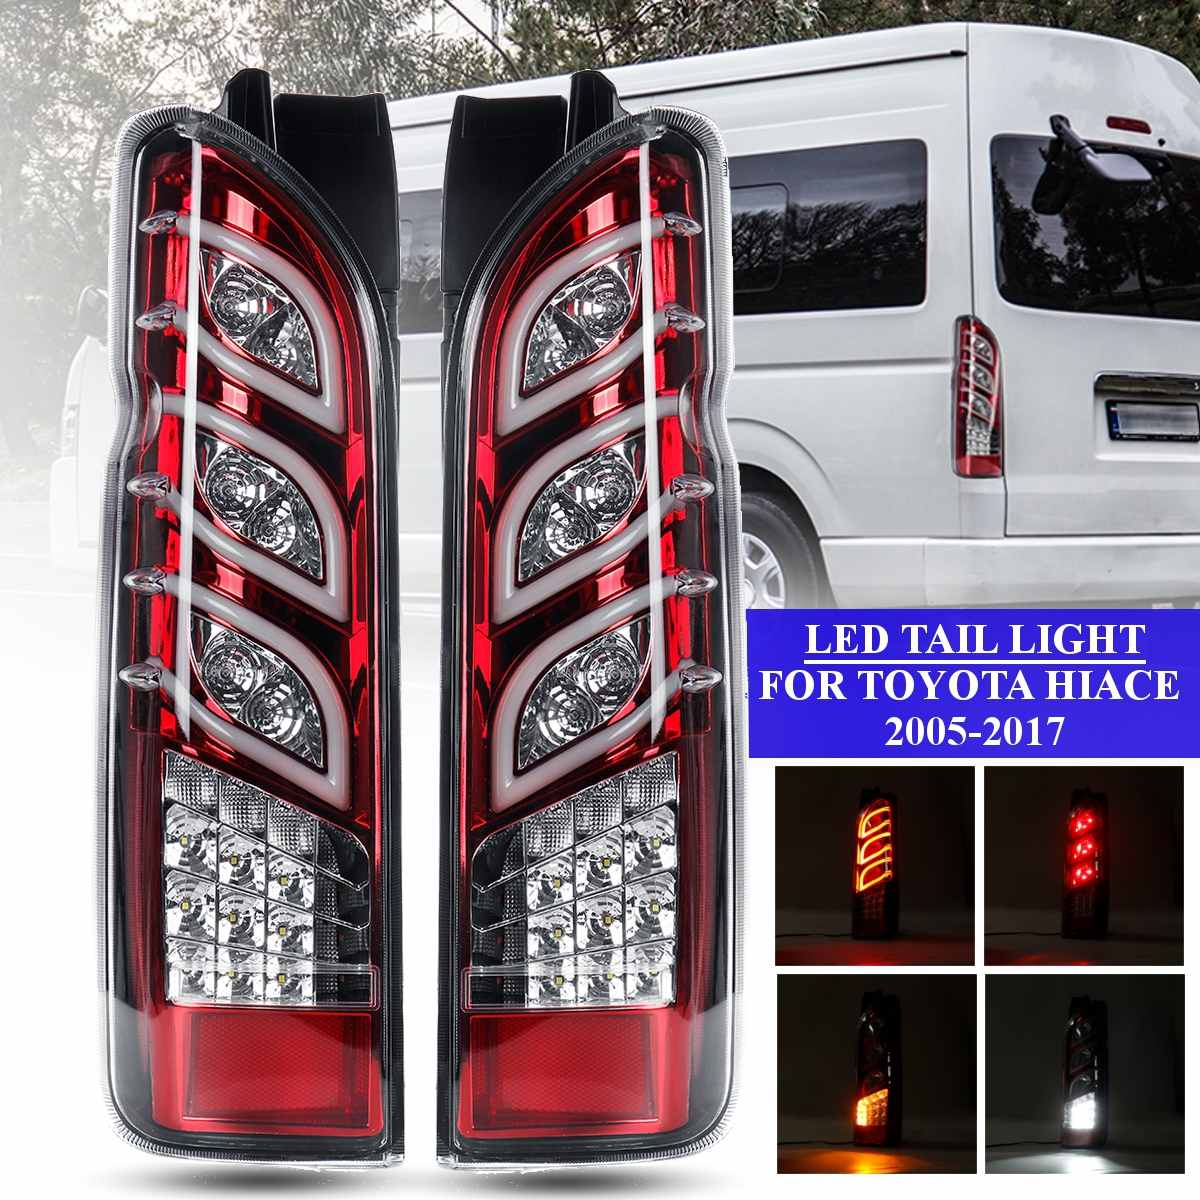 Led Tail Light FOR TOYOTA HIACE 2005 2017 Taillight Rear Reverse Brake Light Fog Light Lamp Drl Accessories Red Shell